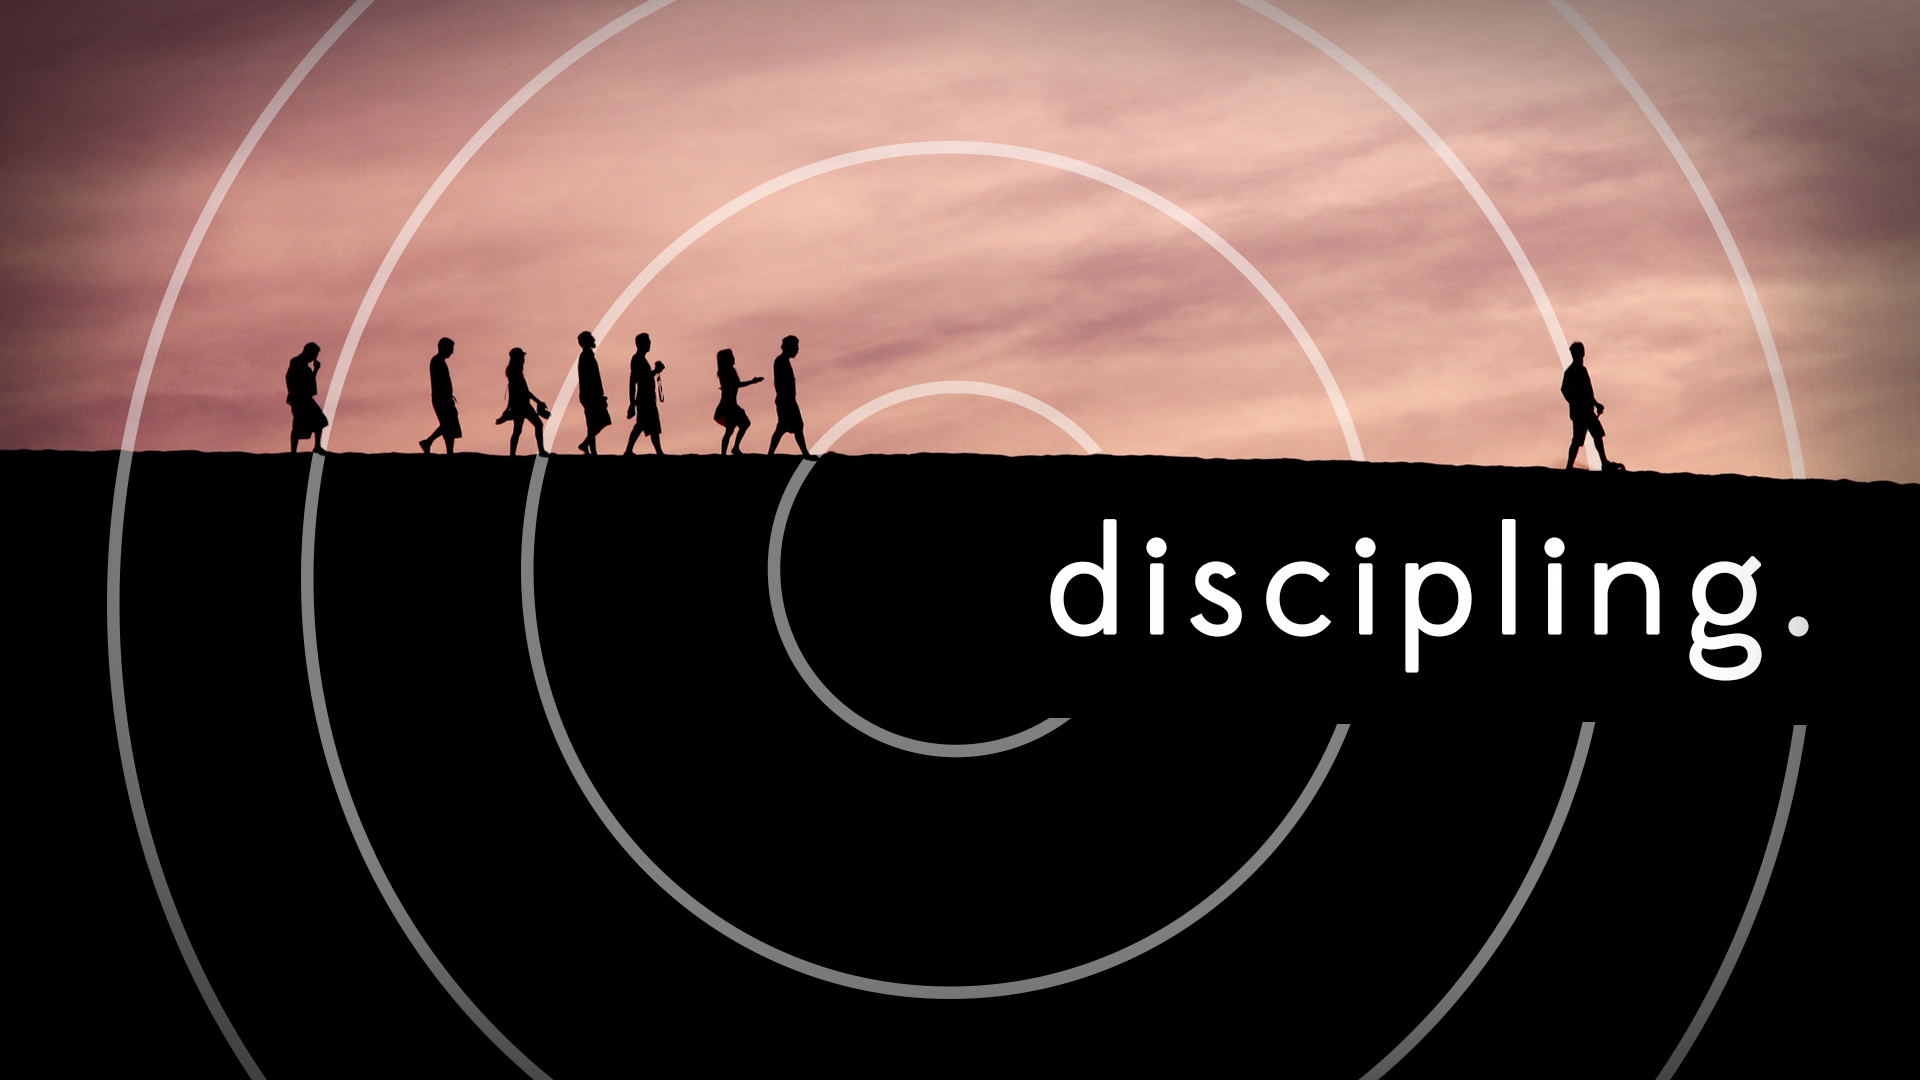 How We Disciple One Another